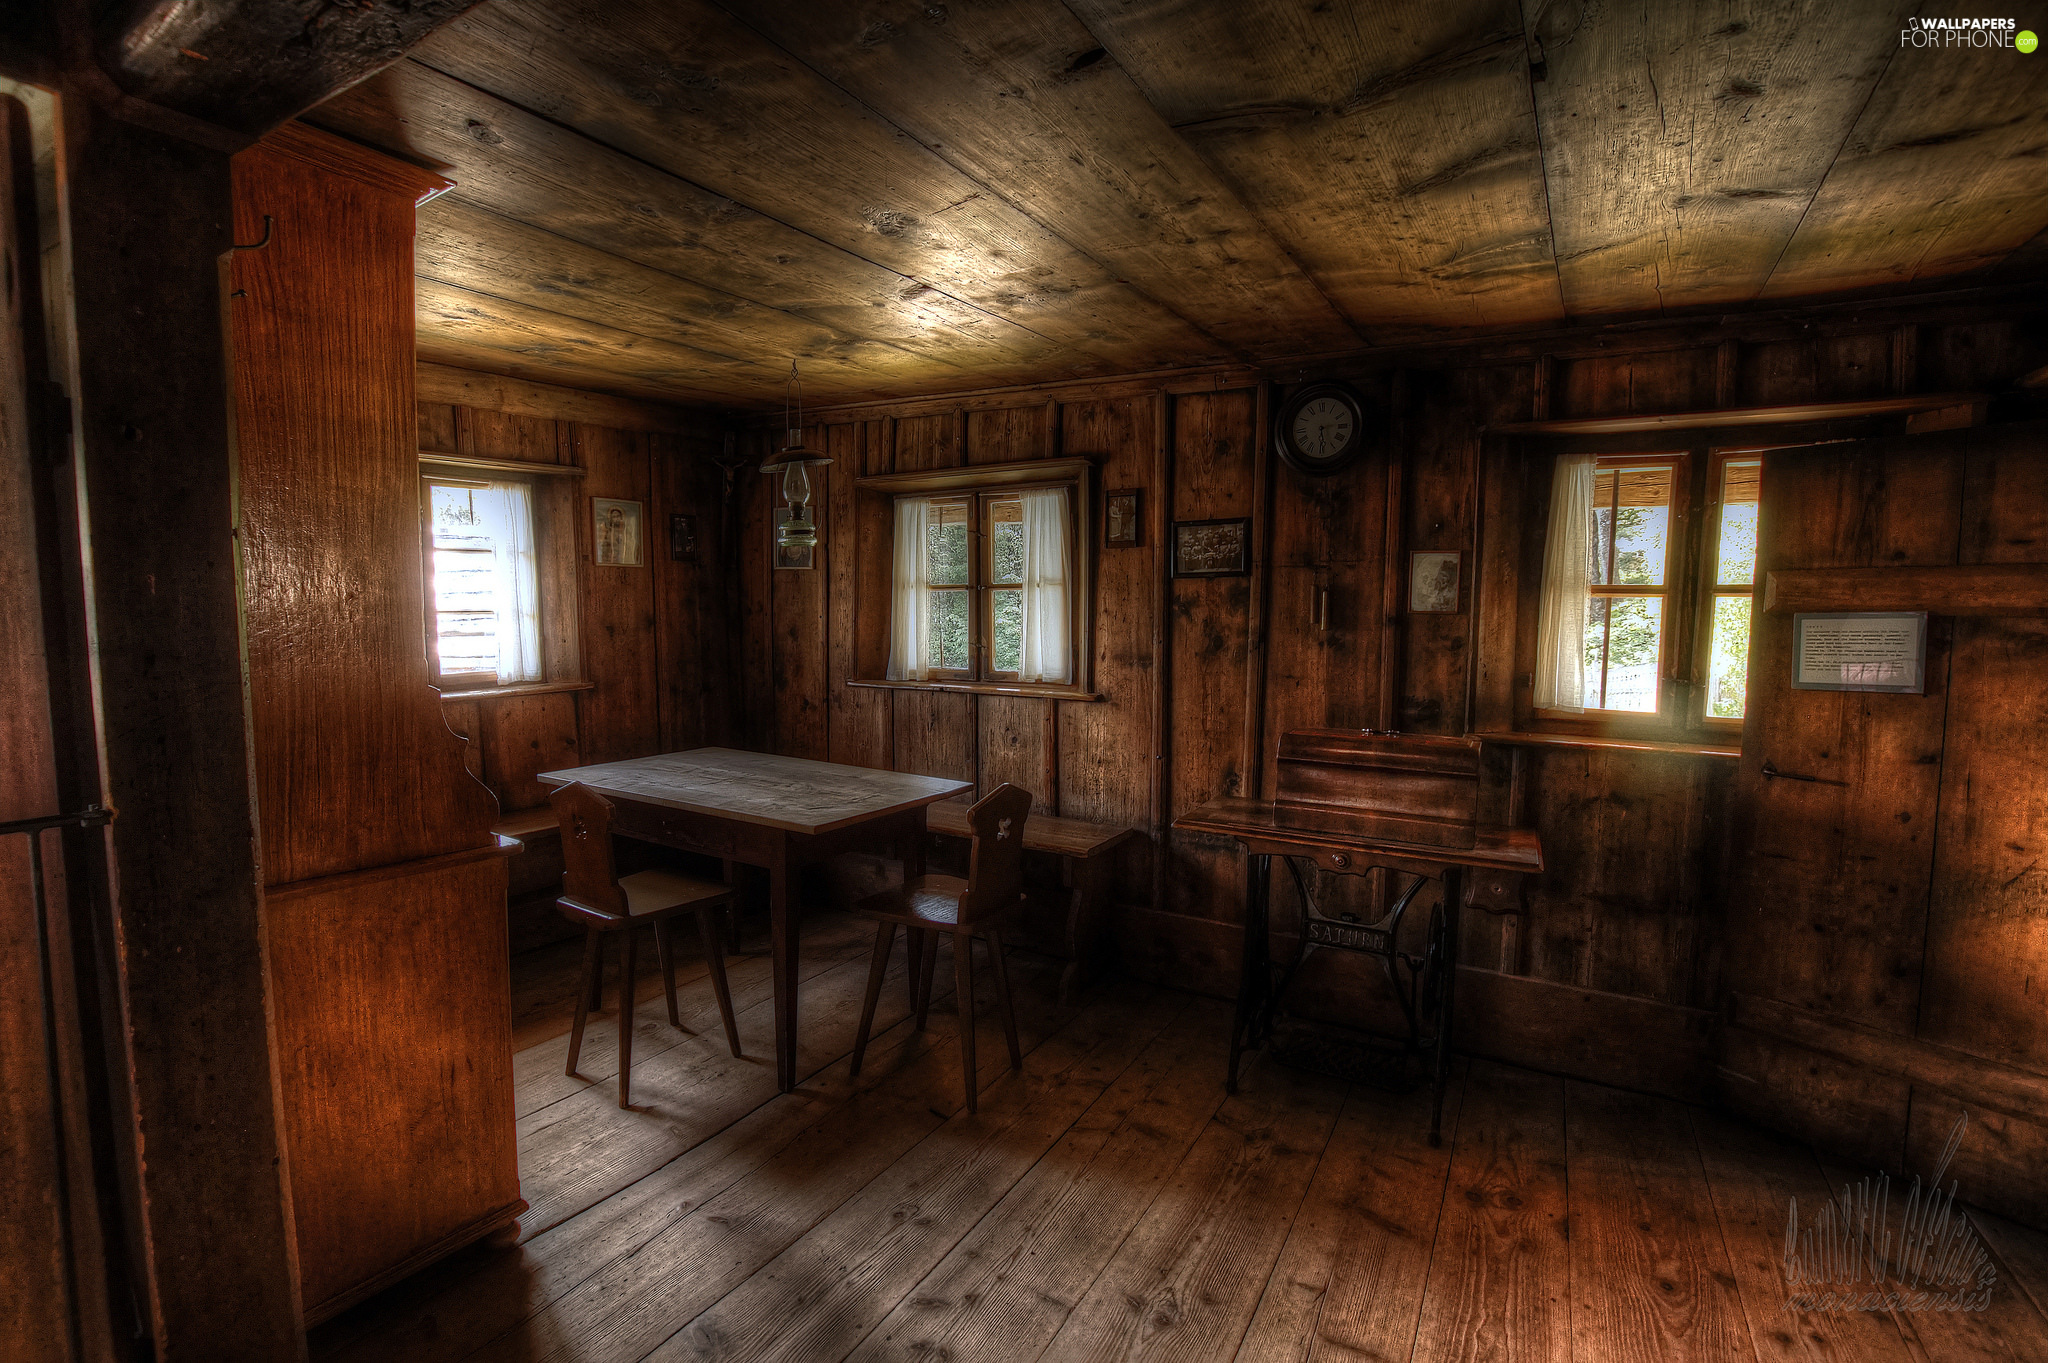 Windows, Table, wood, Stool, Room, Sewing Machine, walls